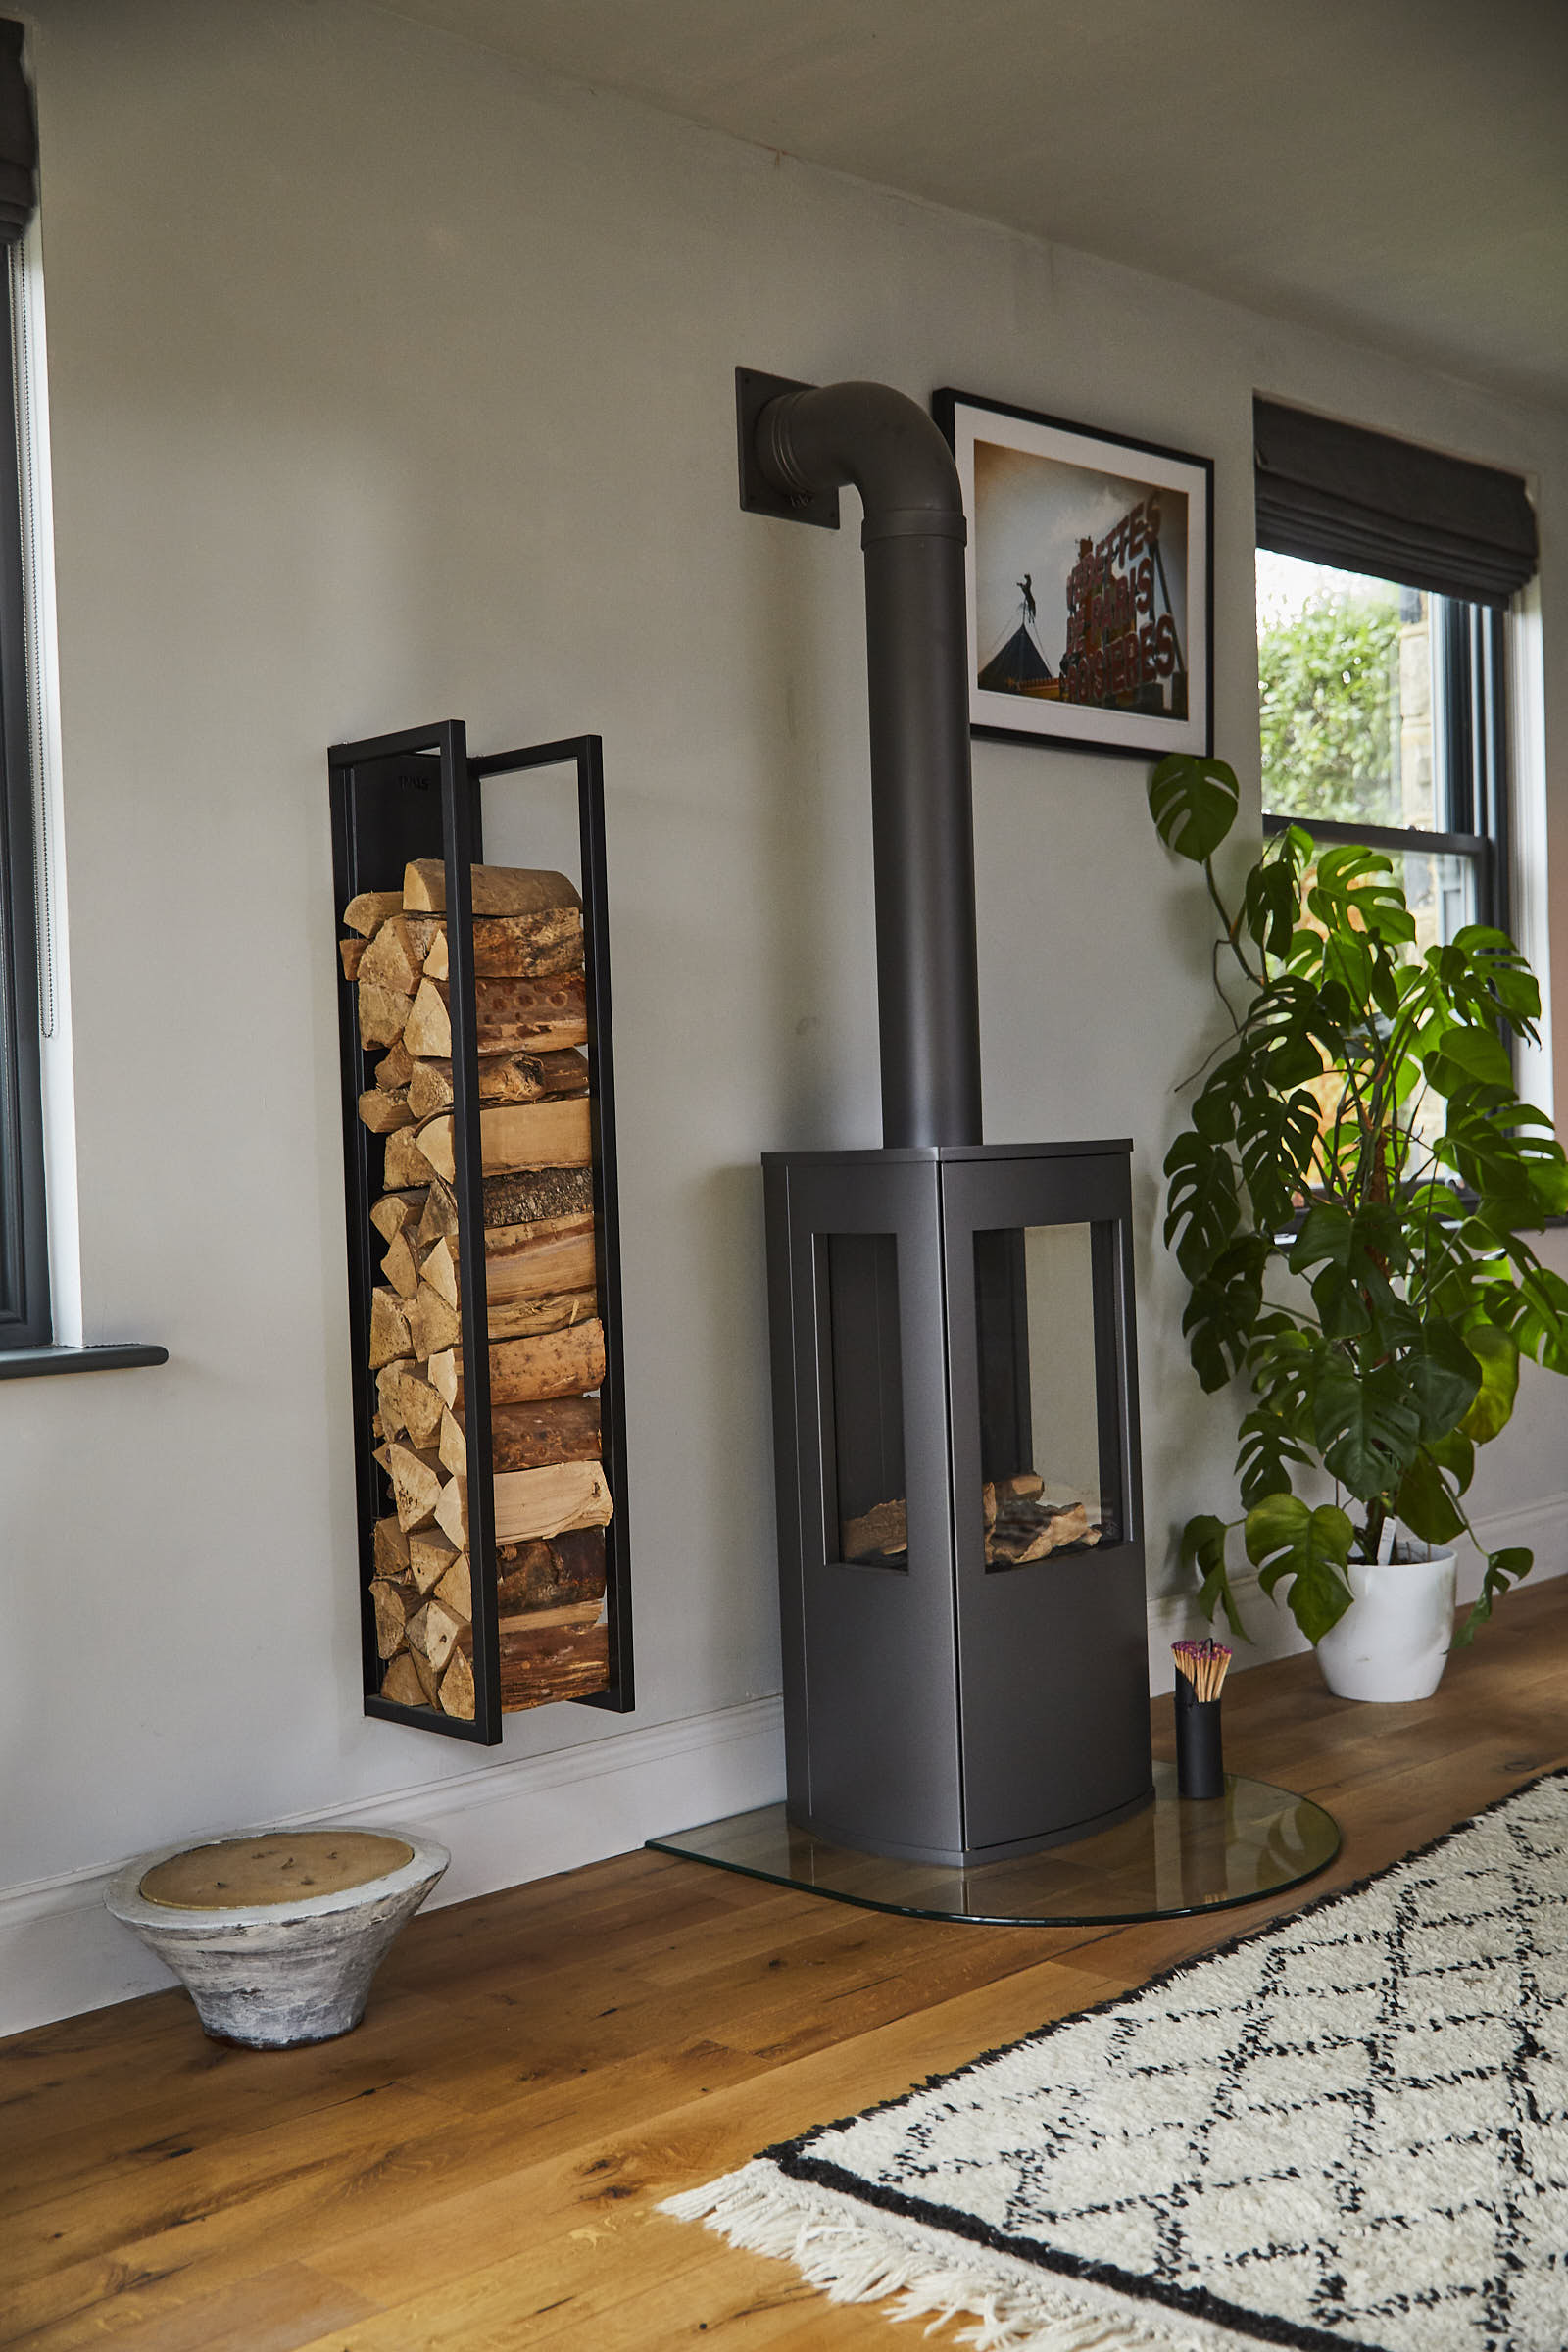 Black log burner with open log storage attached against wall